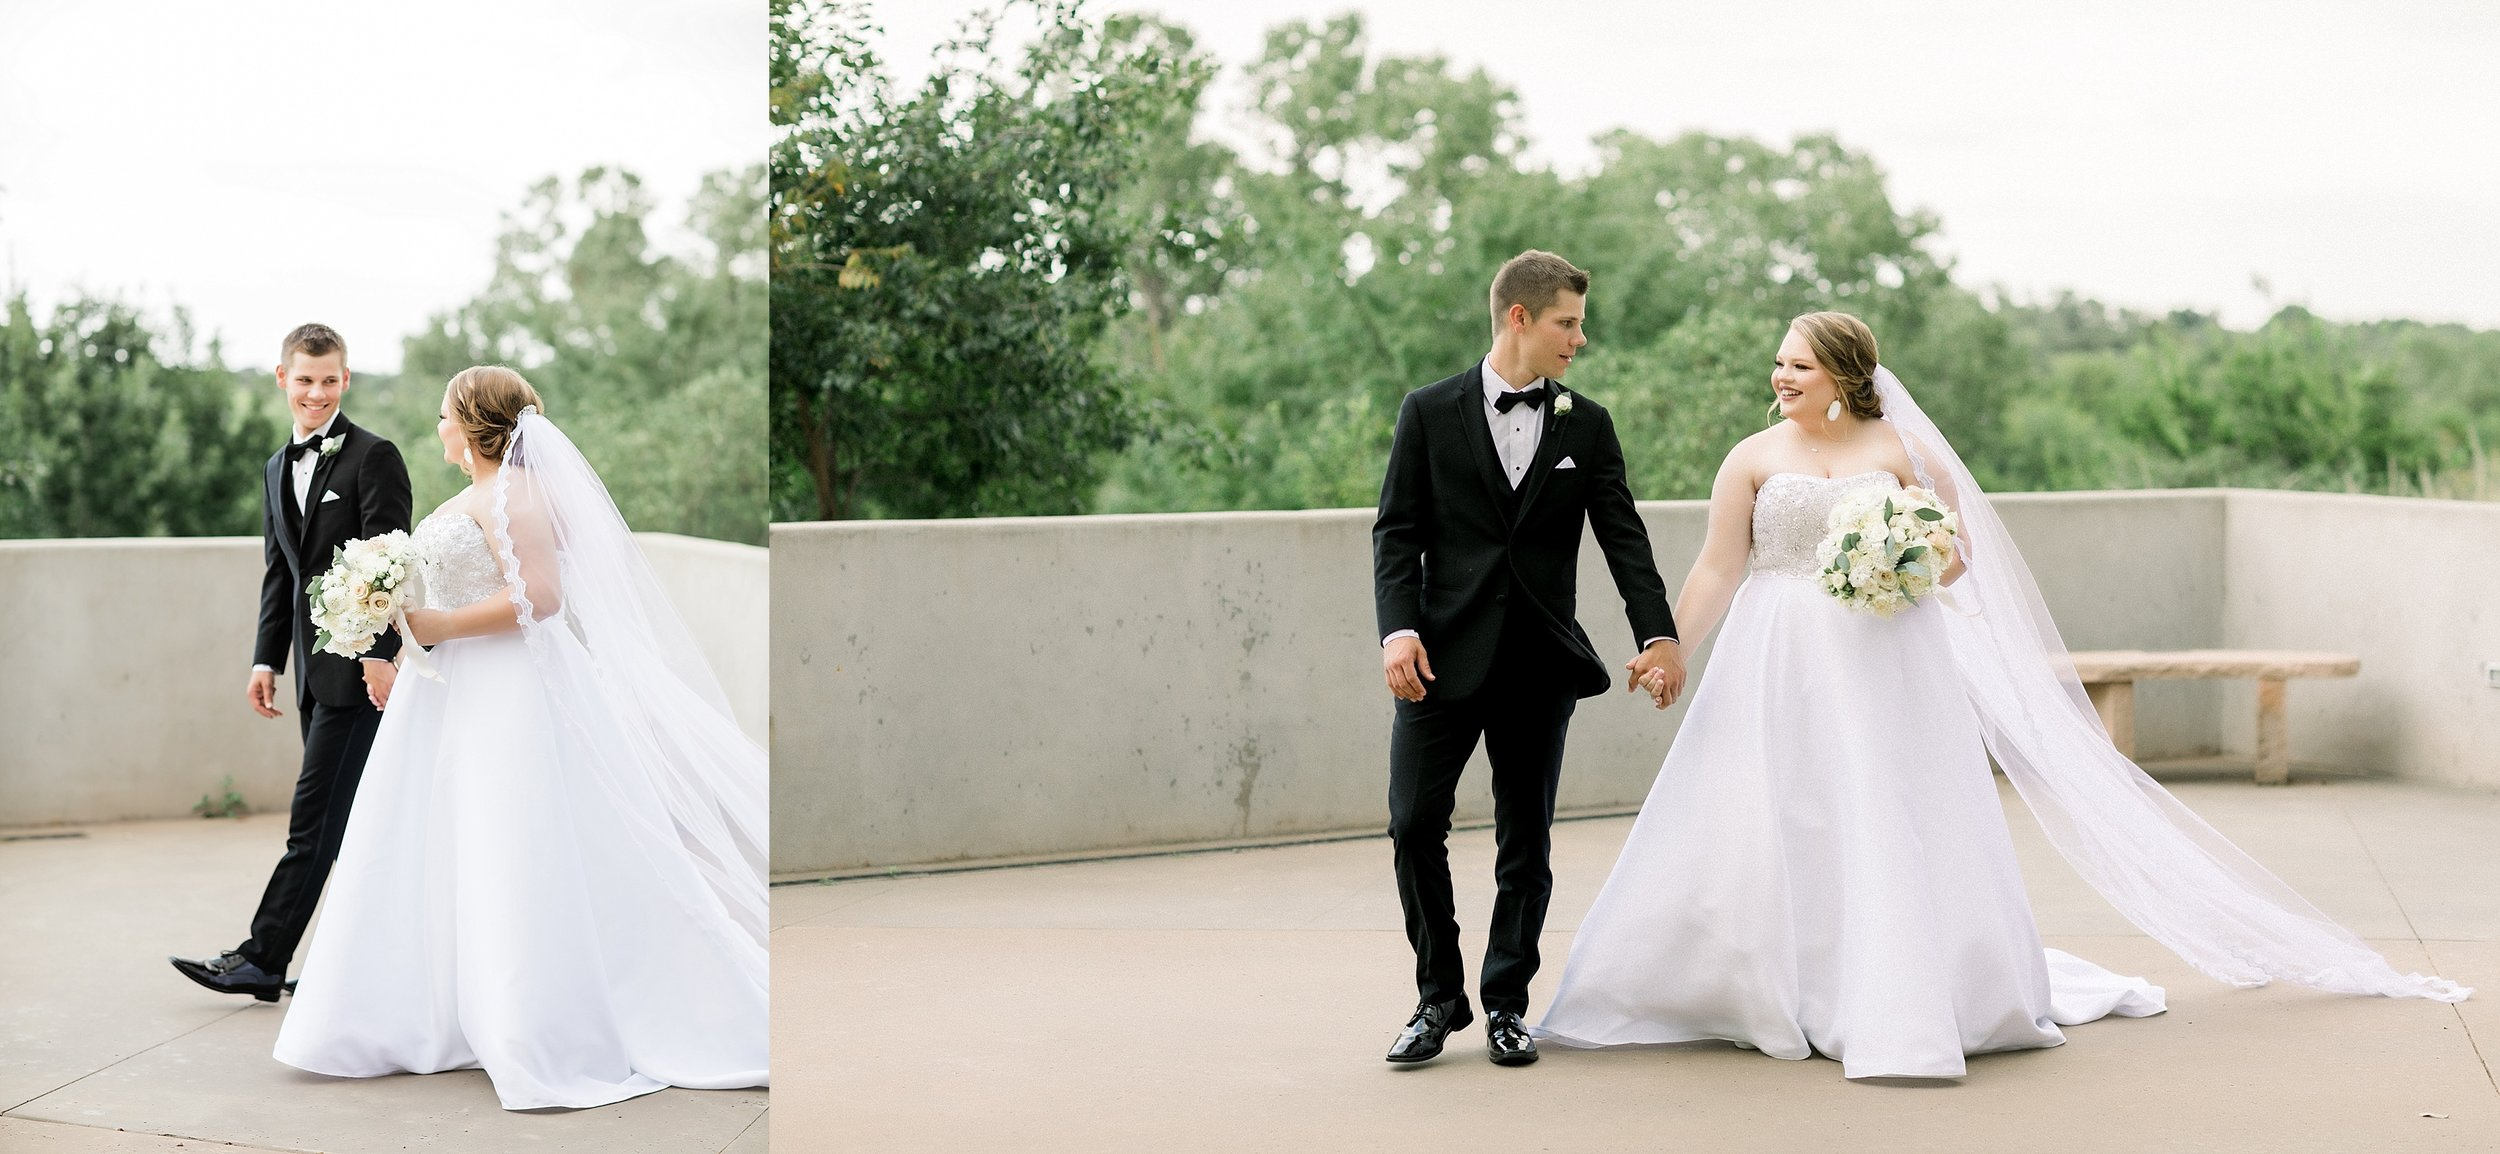 Ryanne-and-william-wedding-at-river-bend-nature-center-wichita-falls-texas-two-clever-chicks-0054.jpg